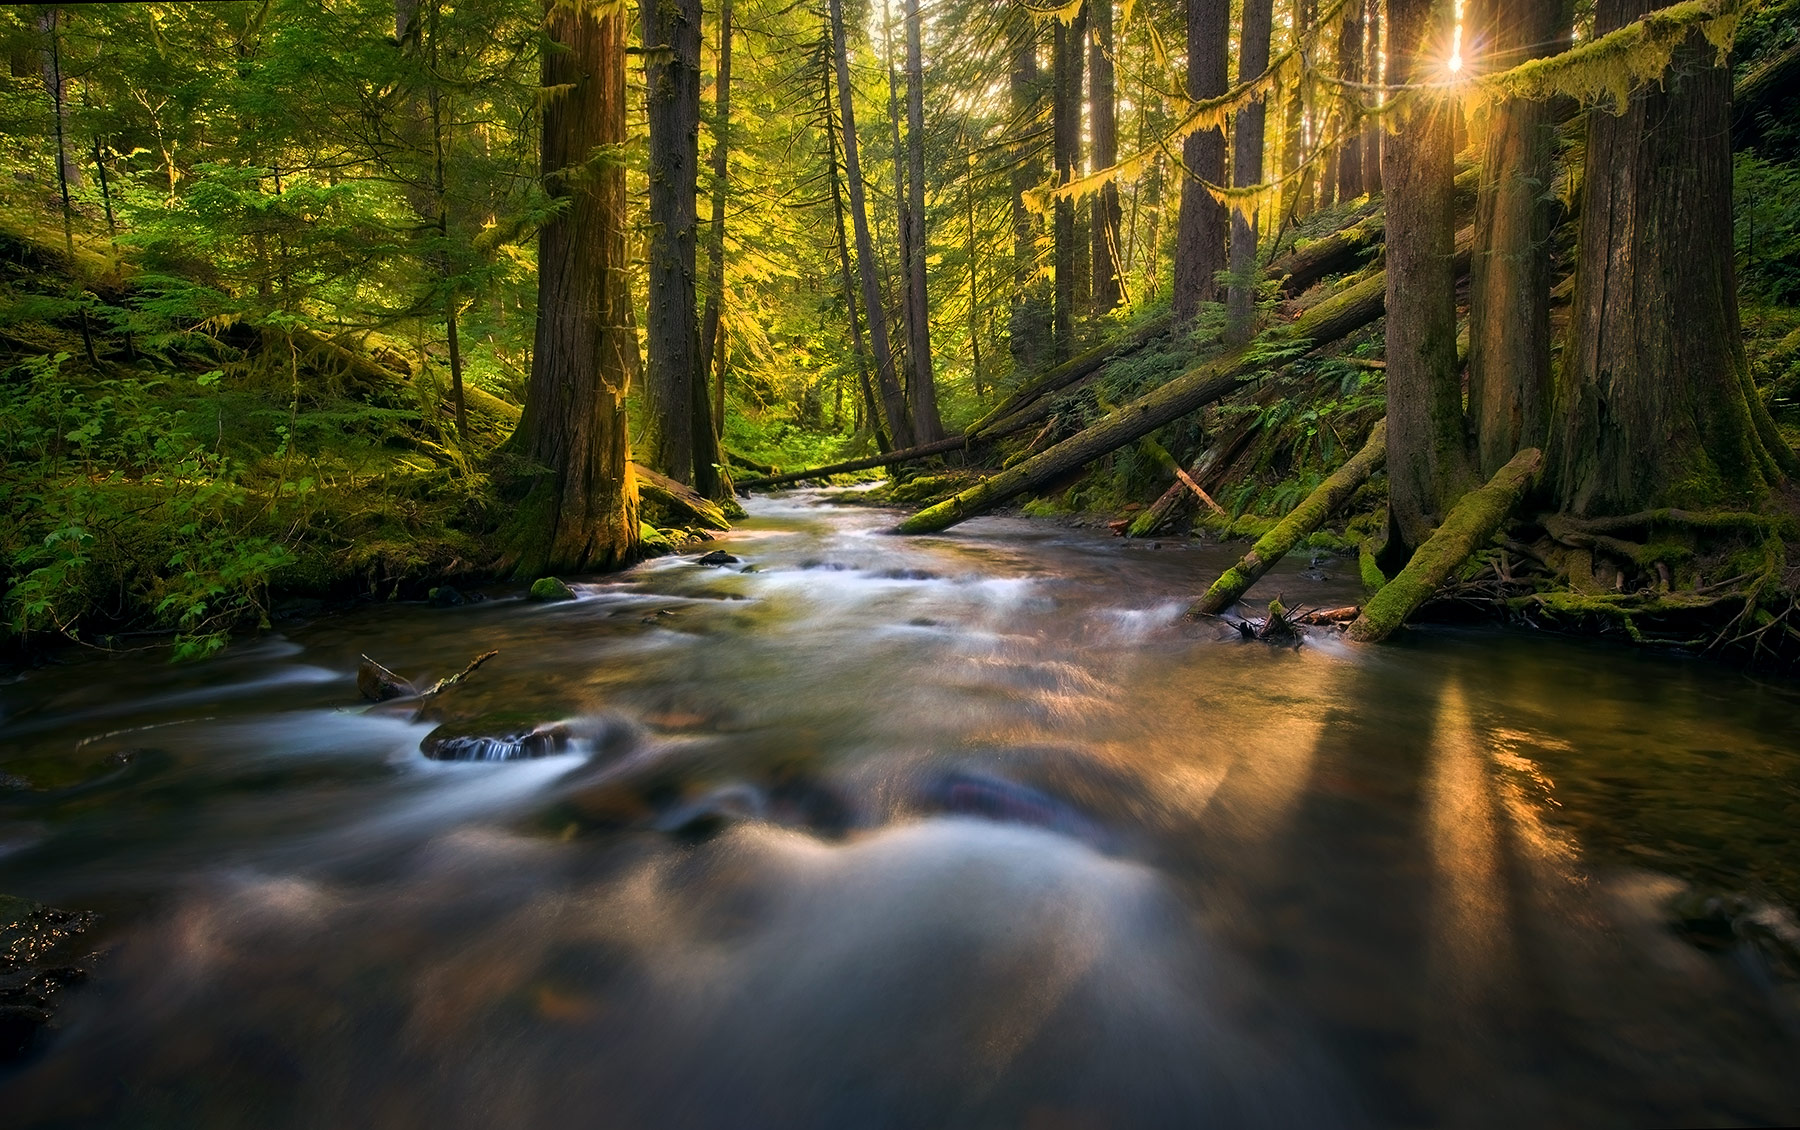 washington, rainforest, gifford pinchot, photo